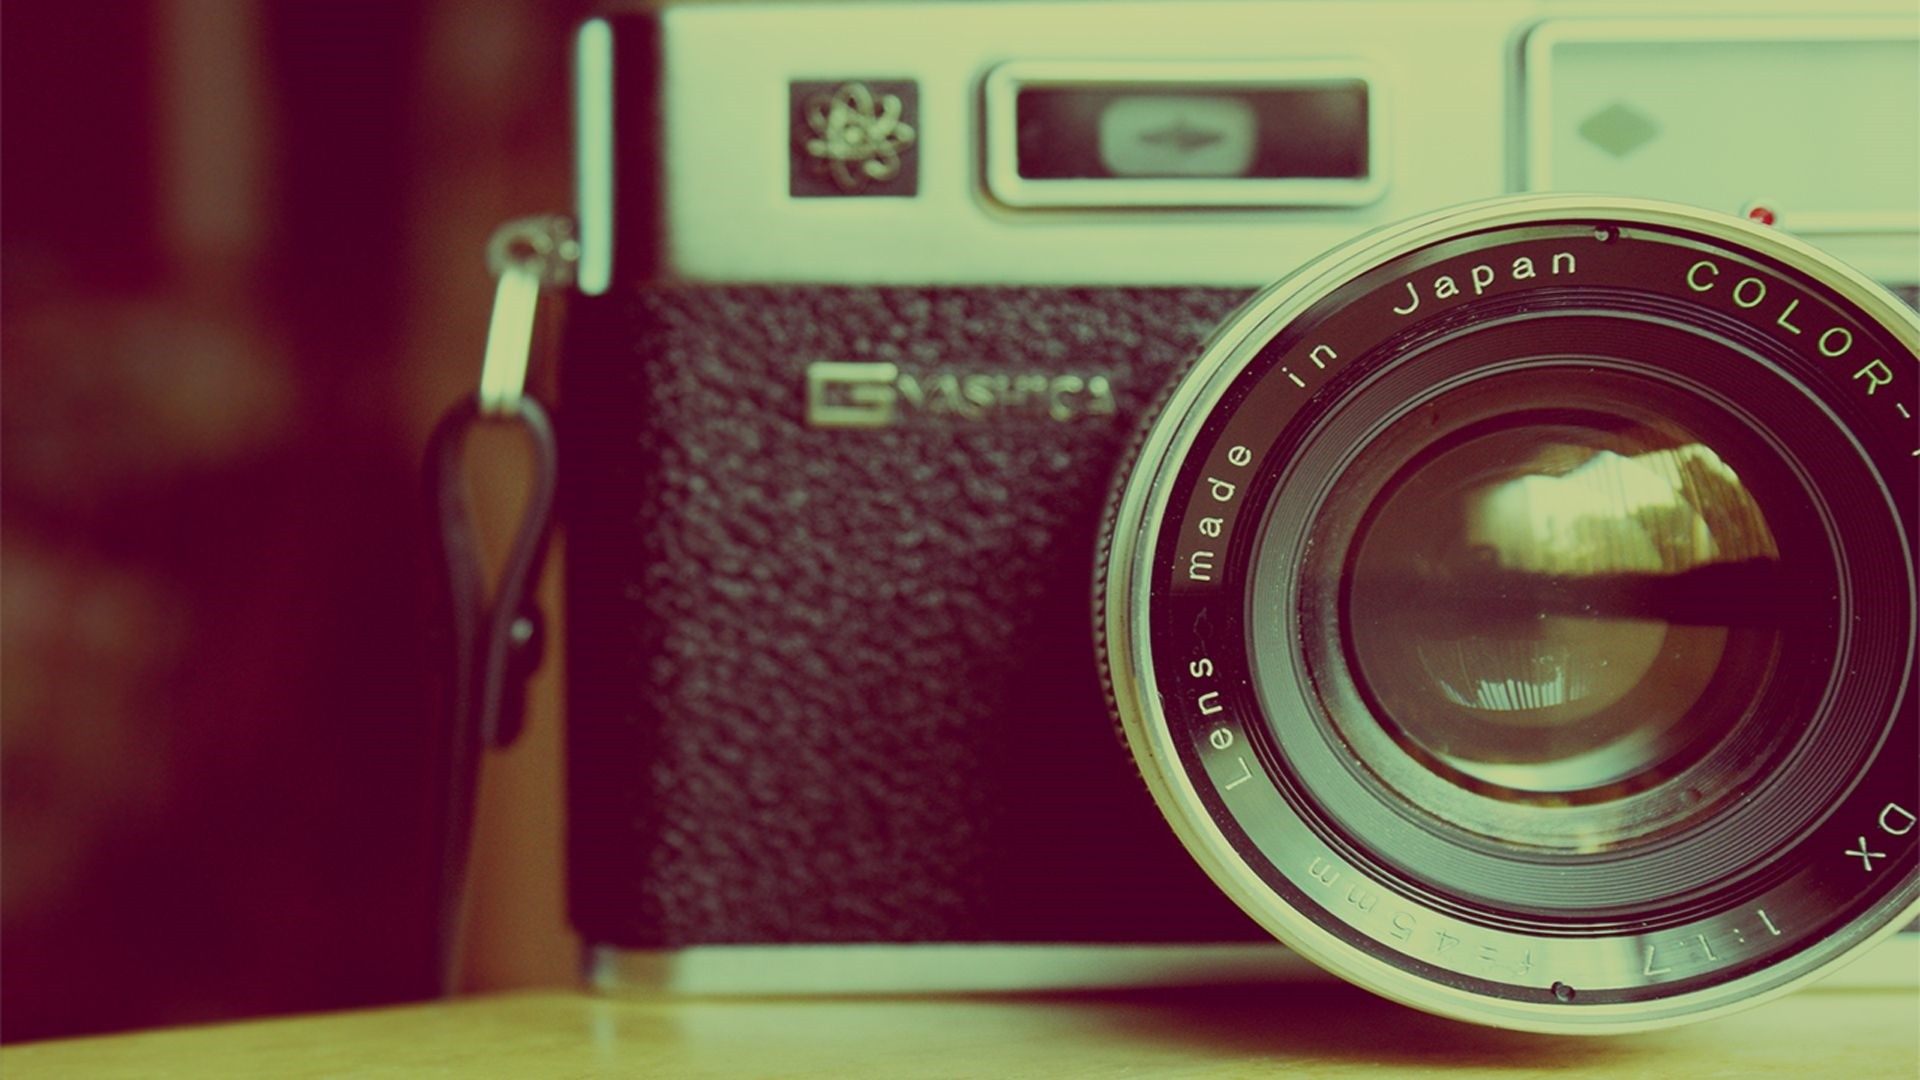 Photography Vintage hd wallpaper download